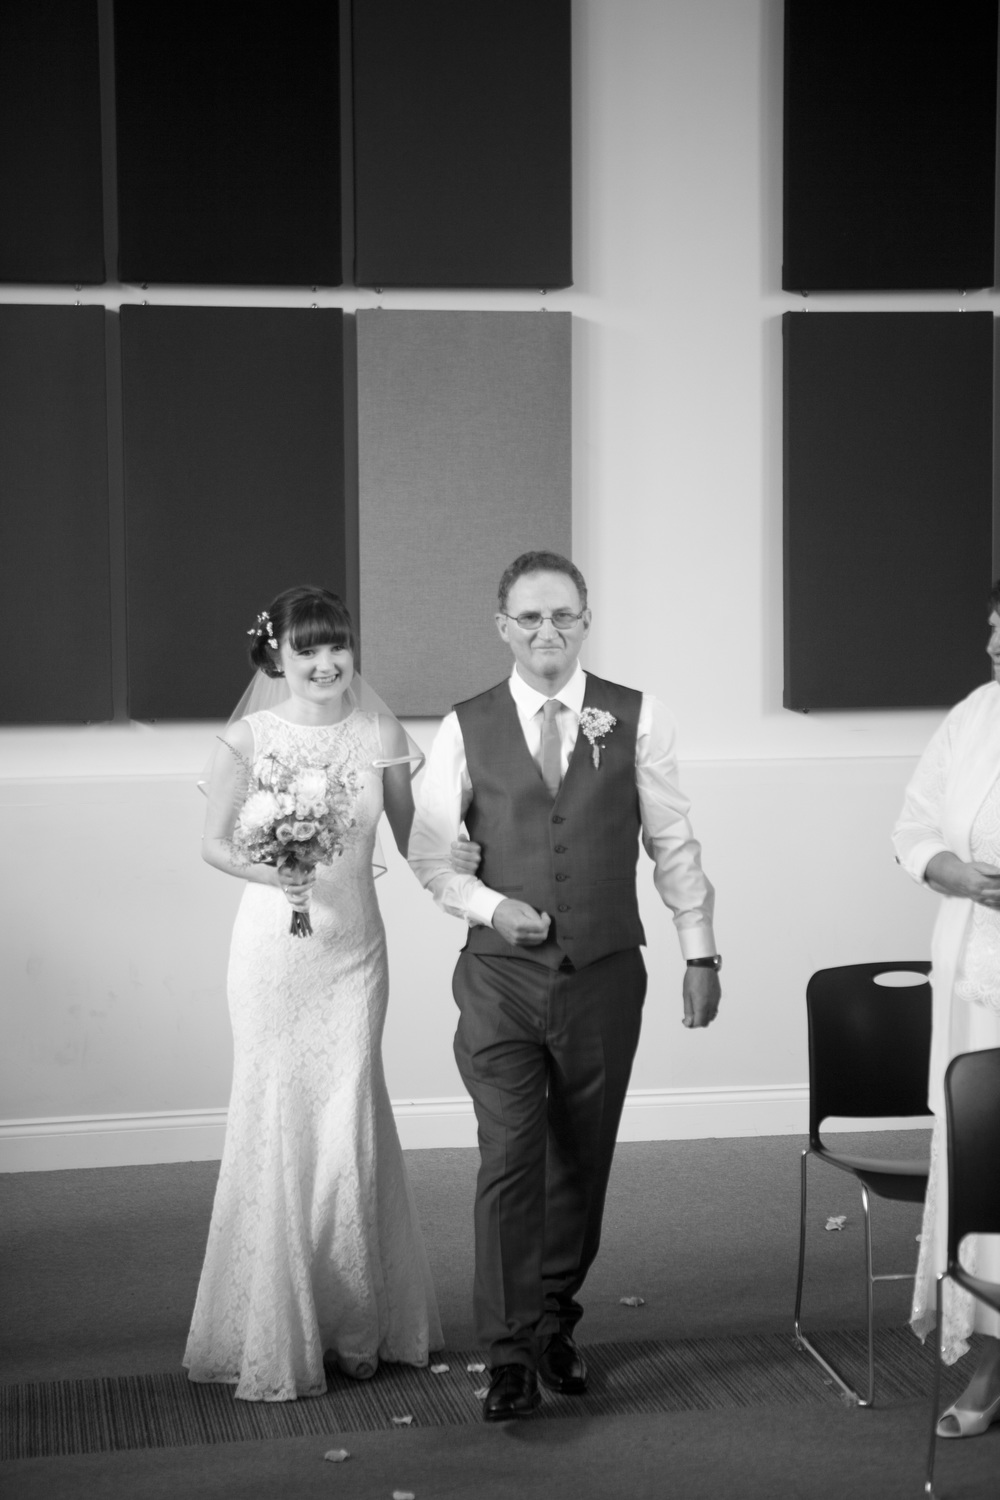 Wedding Photographer Stevenage